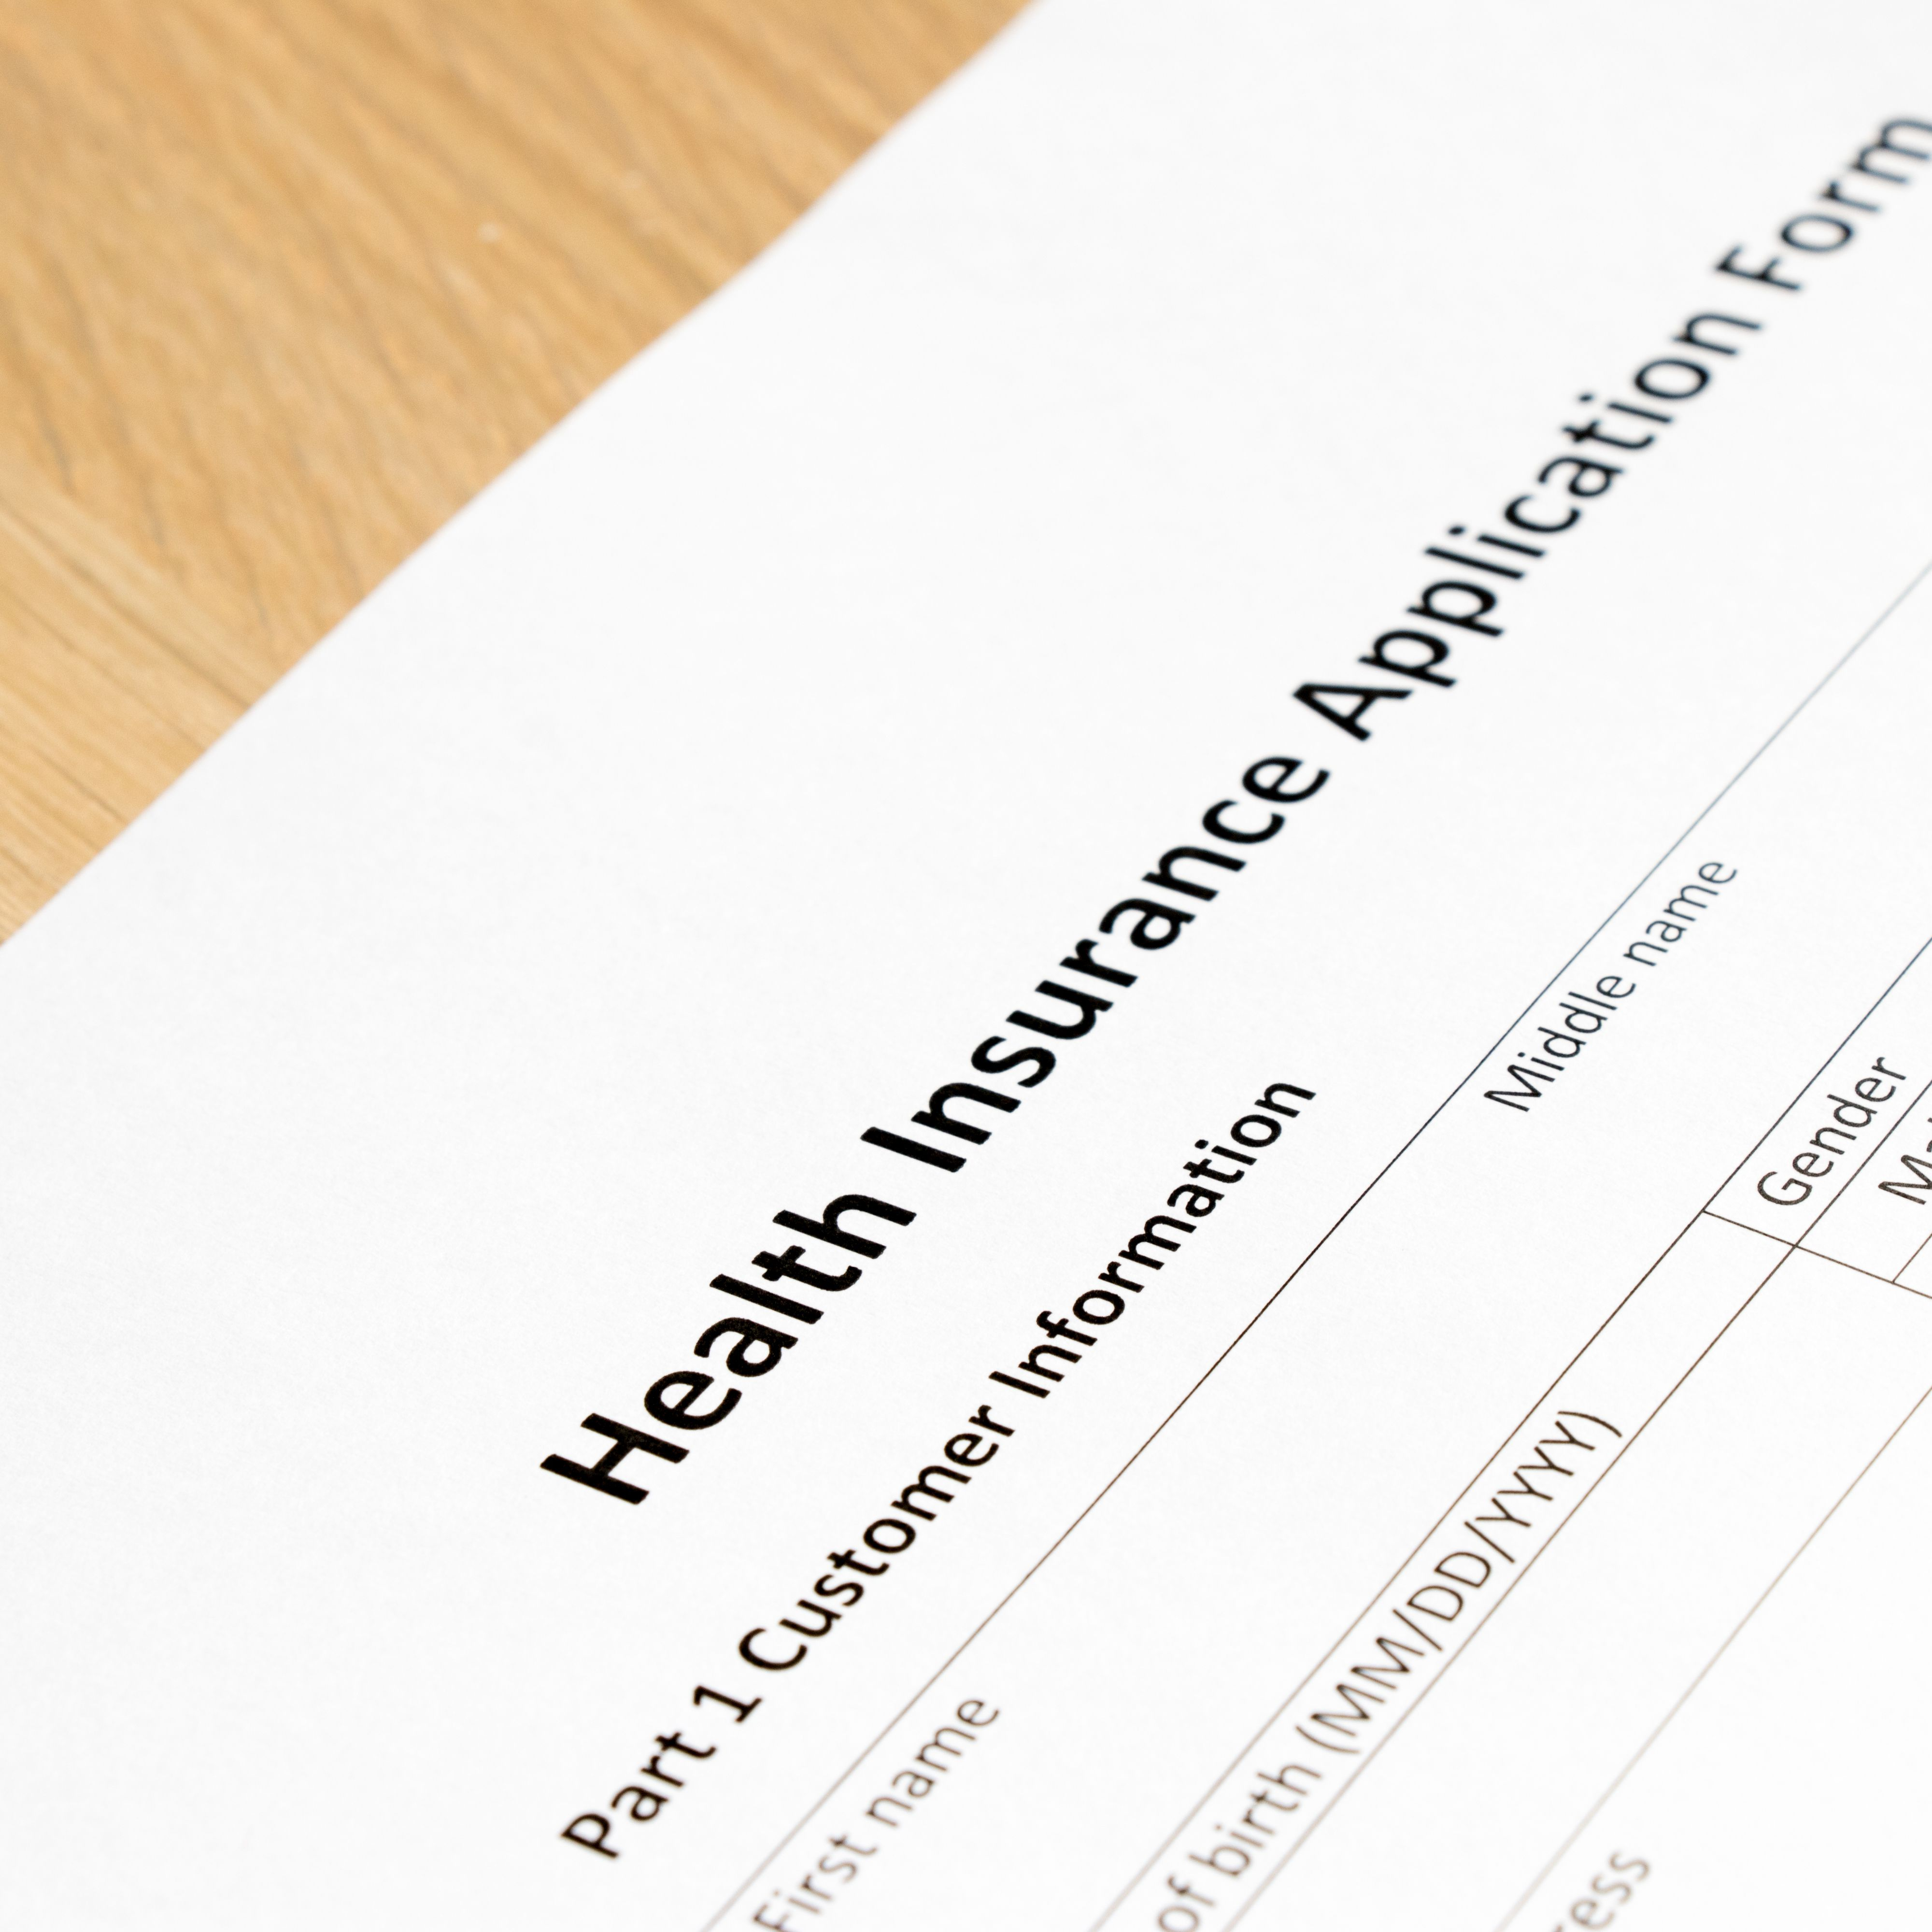 How to Fight a Health Insurance Claim Denial: What You Need to Know